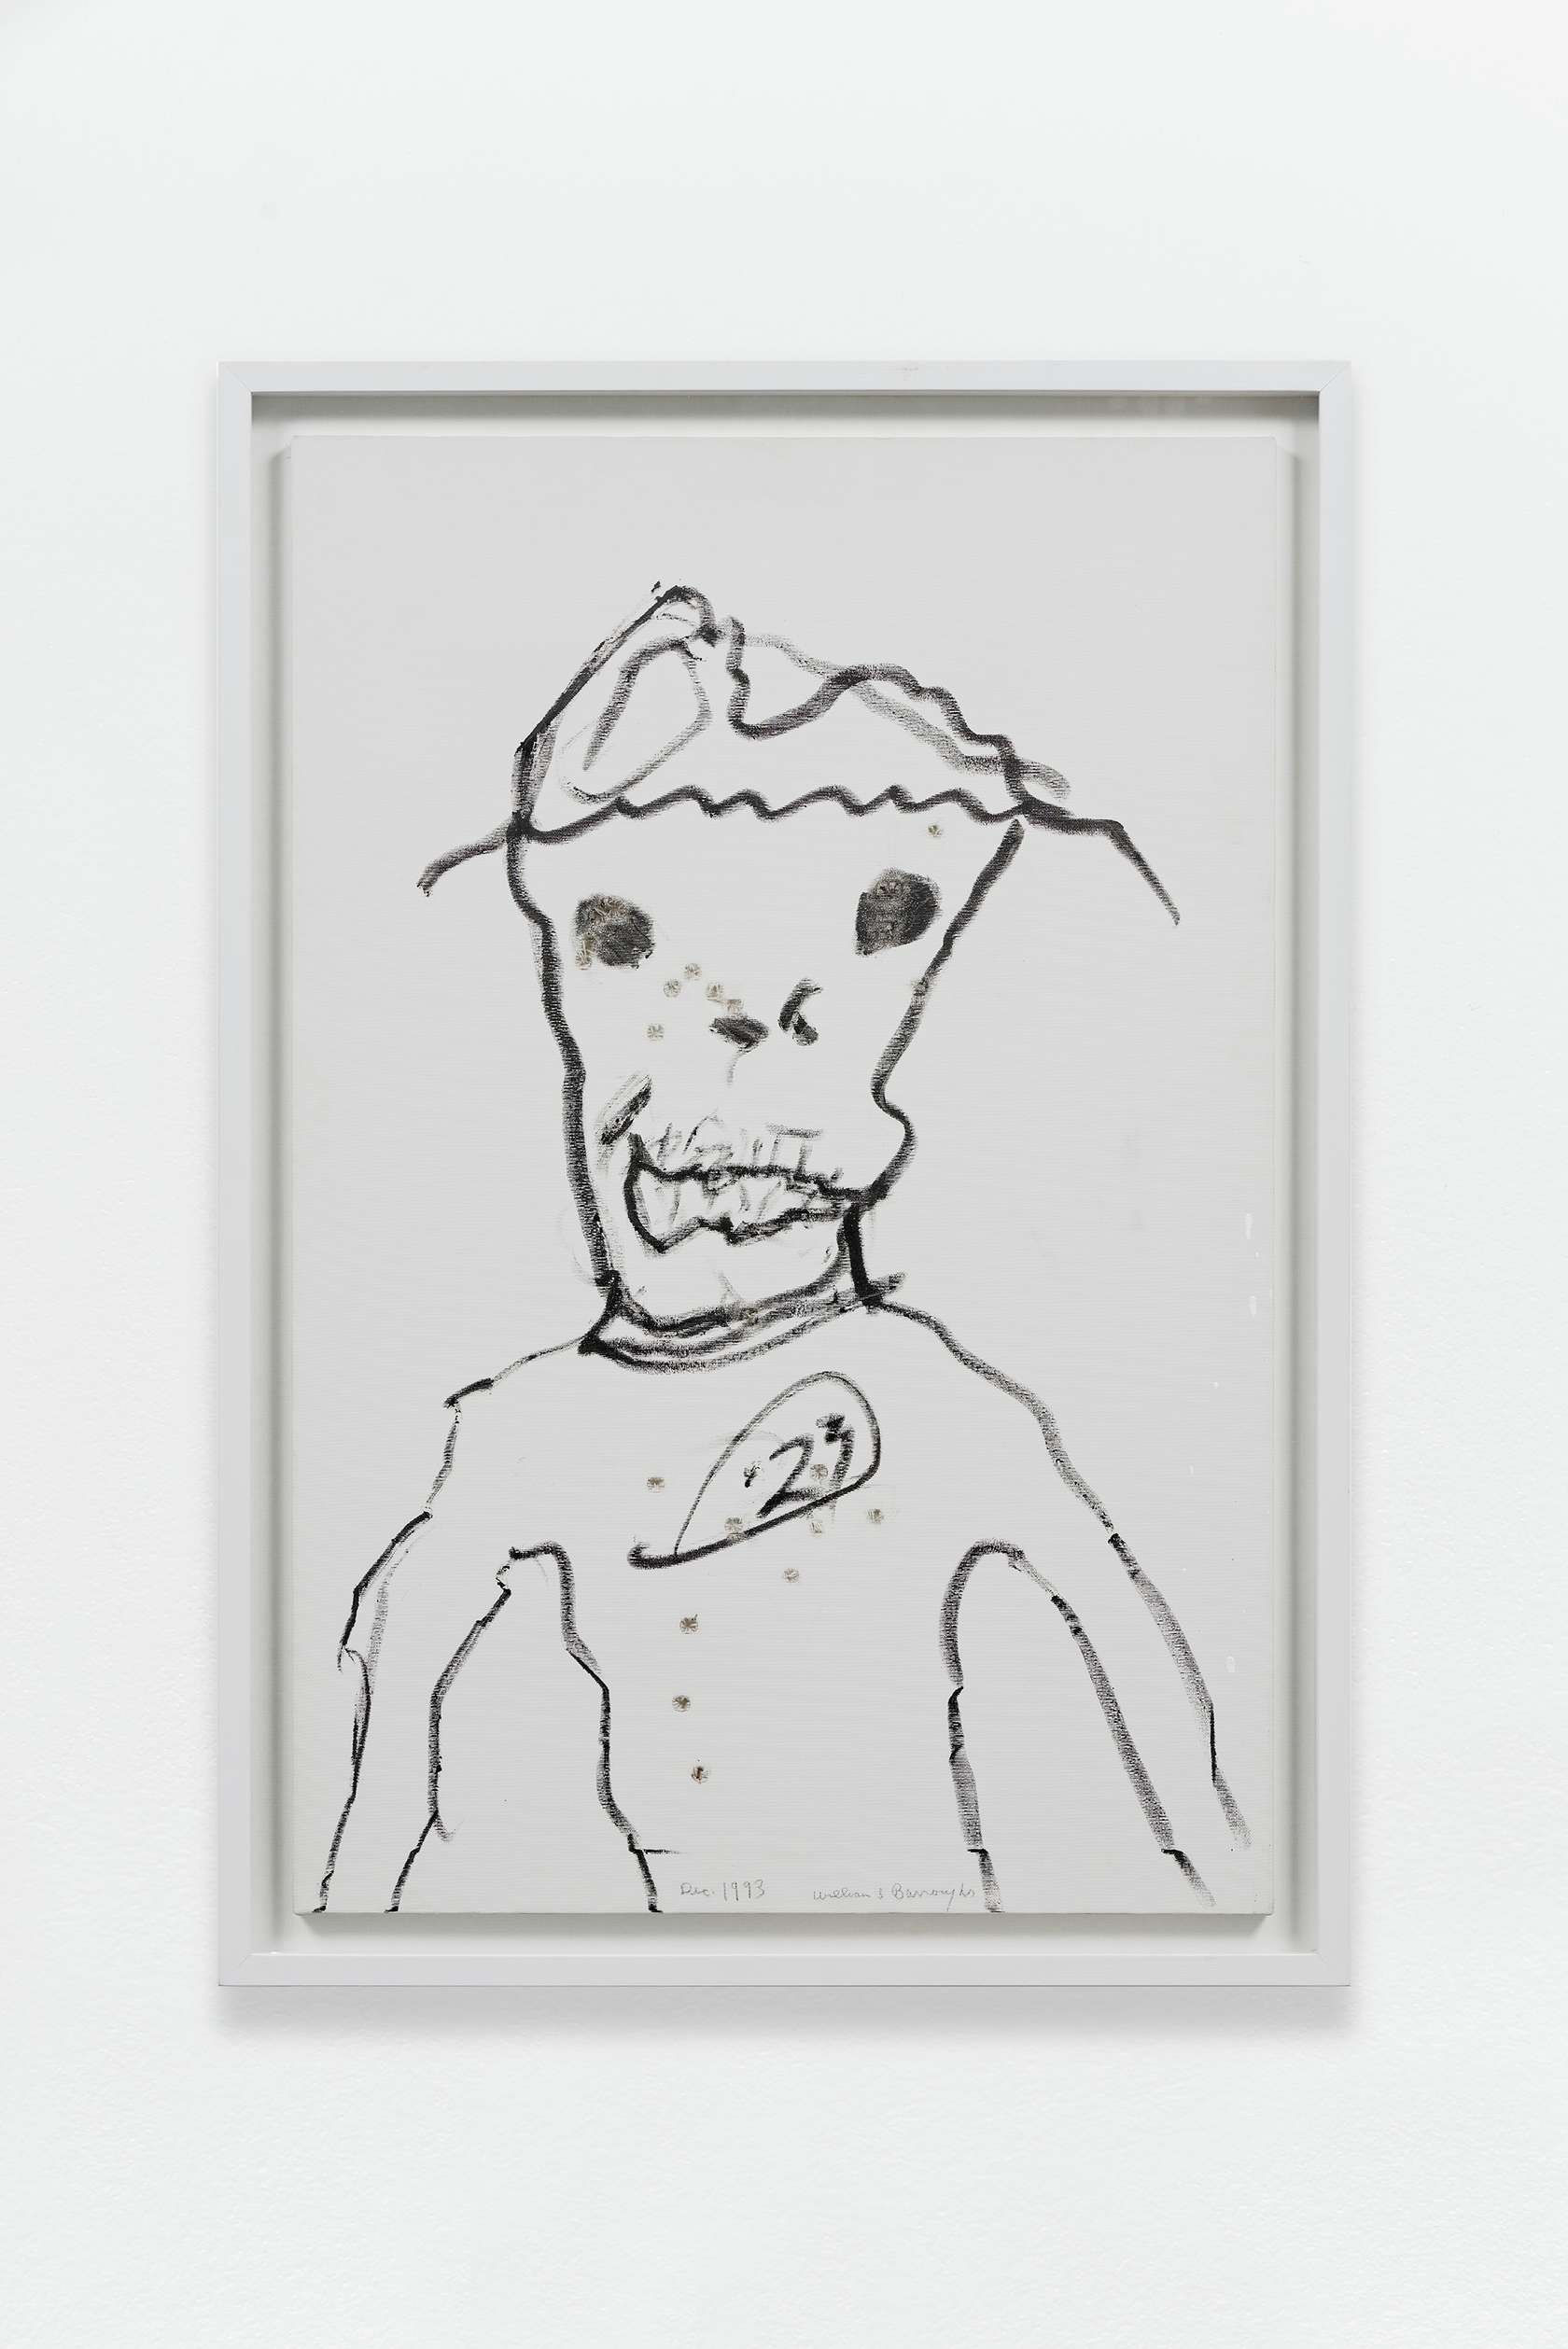 William S. Burroughs, Untitled (23 badge), 1993 Acrylique sur toile, 23 impacts de balles91 × 60.5 cm / 35 7/8 × 23 7/8 in.